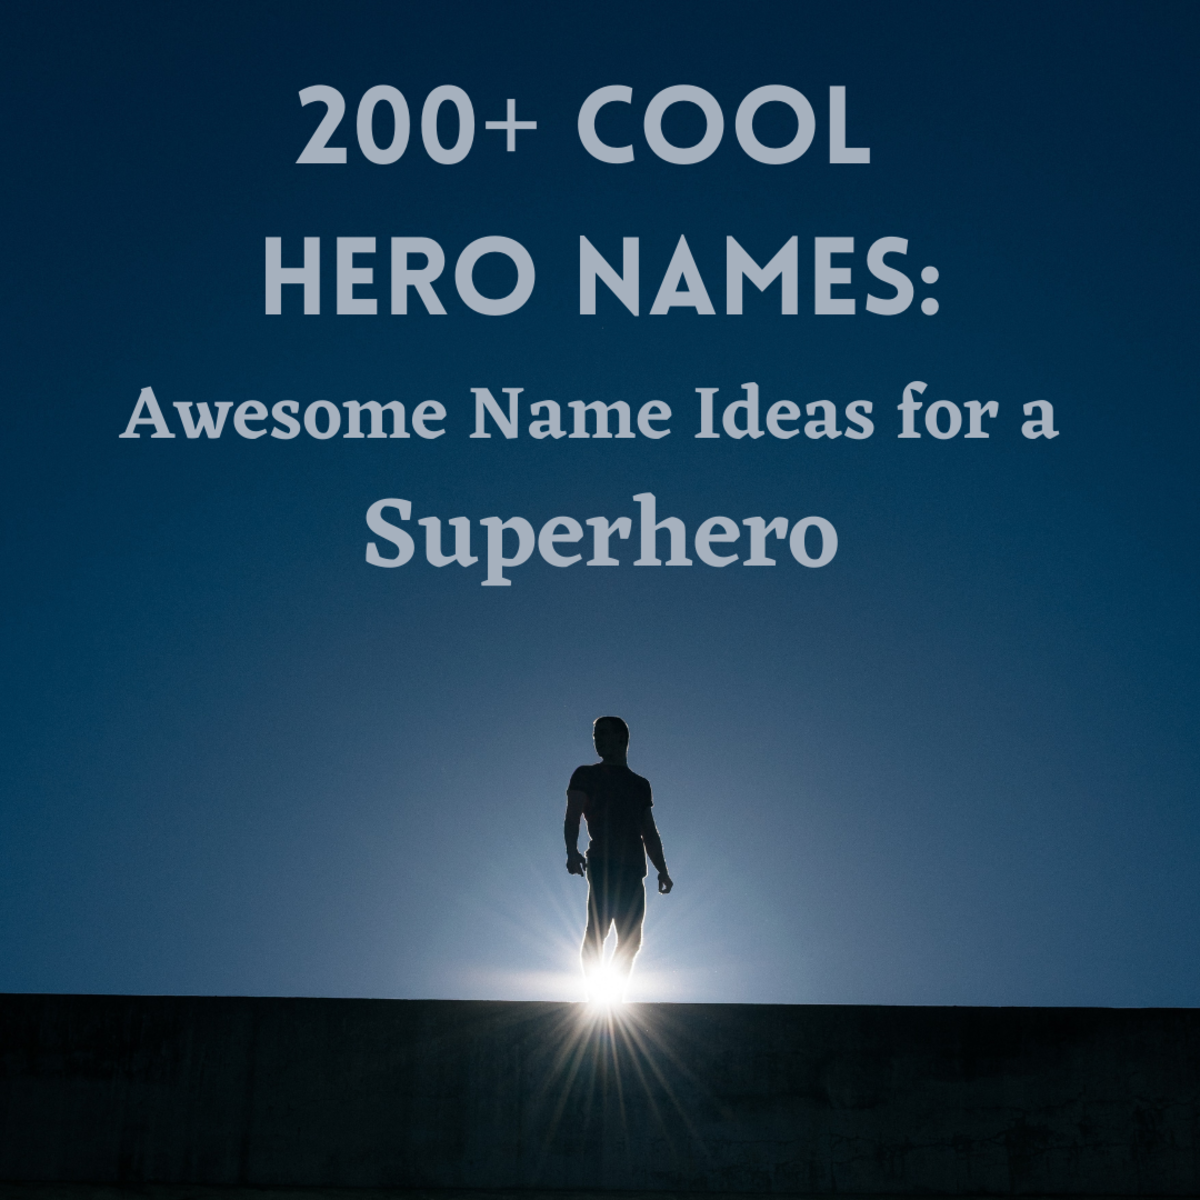 Every hero deserves a great name!